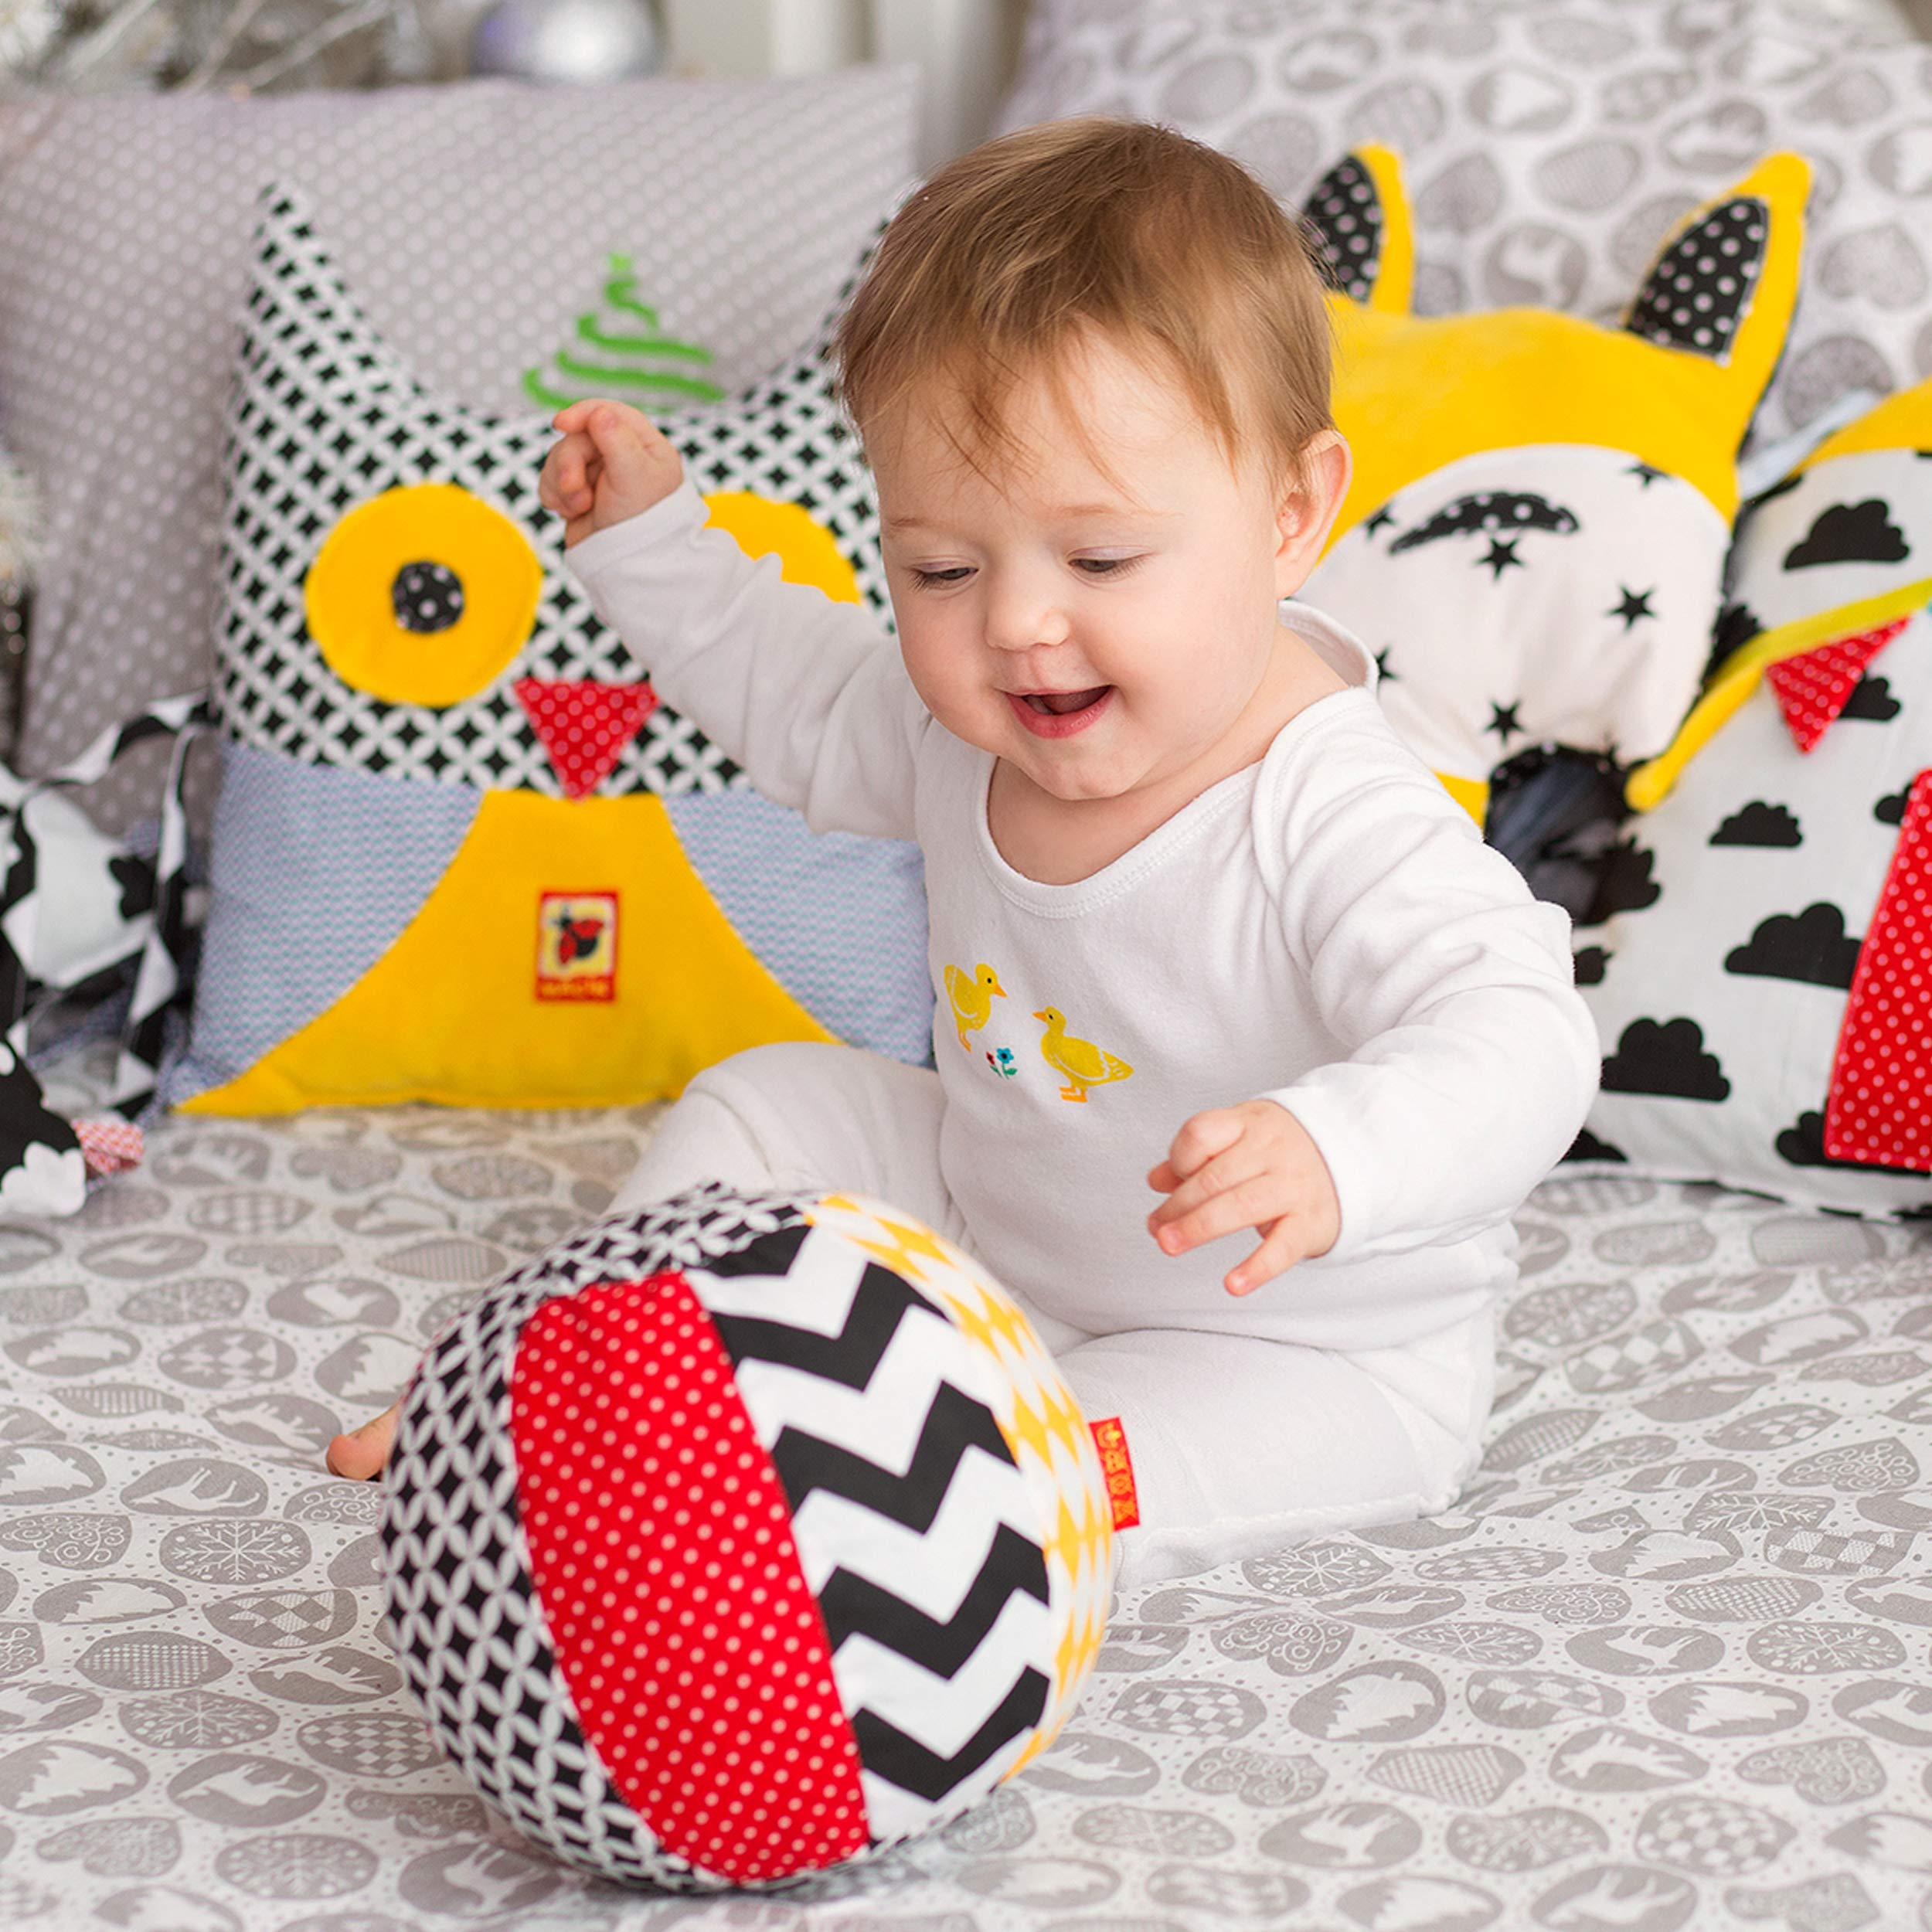 MACIK Soft infant toys SET 2 - Baby sensory toys Development toys 6-12 month baby toys - Baby ride on toys activity GYM toys - TAG CRINKLE toy baby RATTLE toys - Newborn toys baby 1 year old toys also by MACIK (Image #7)